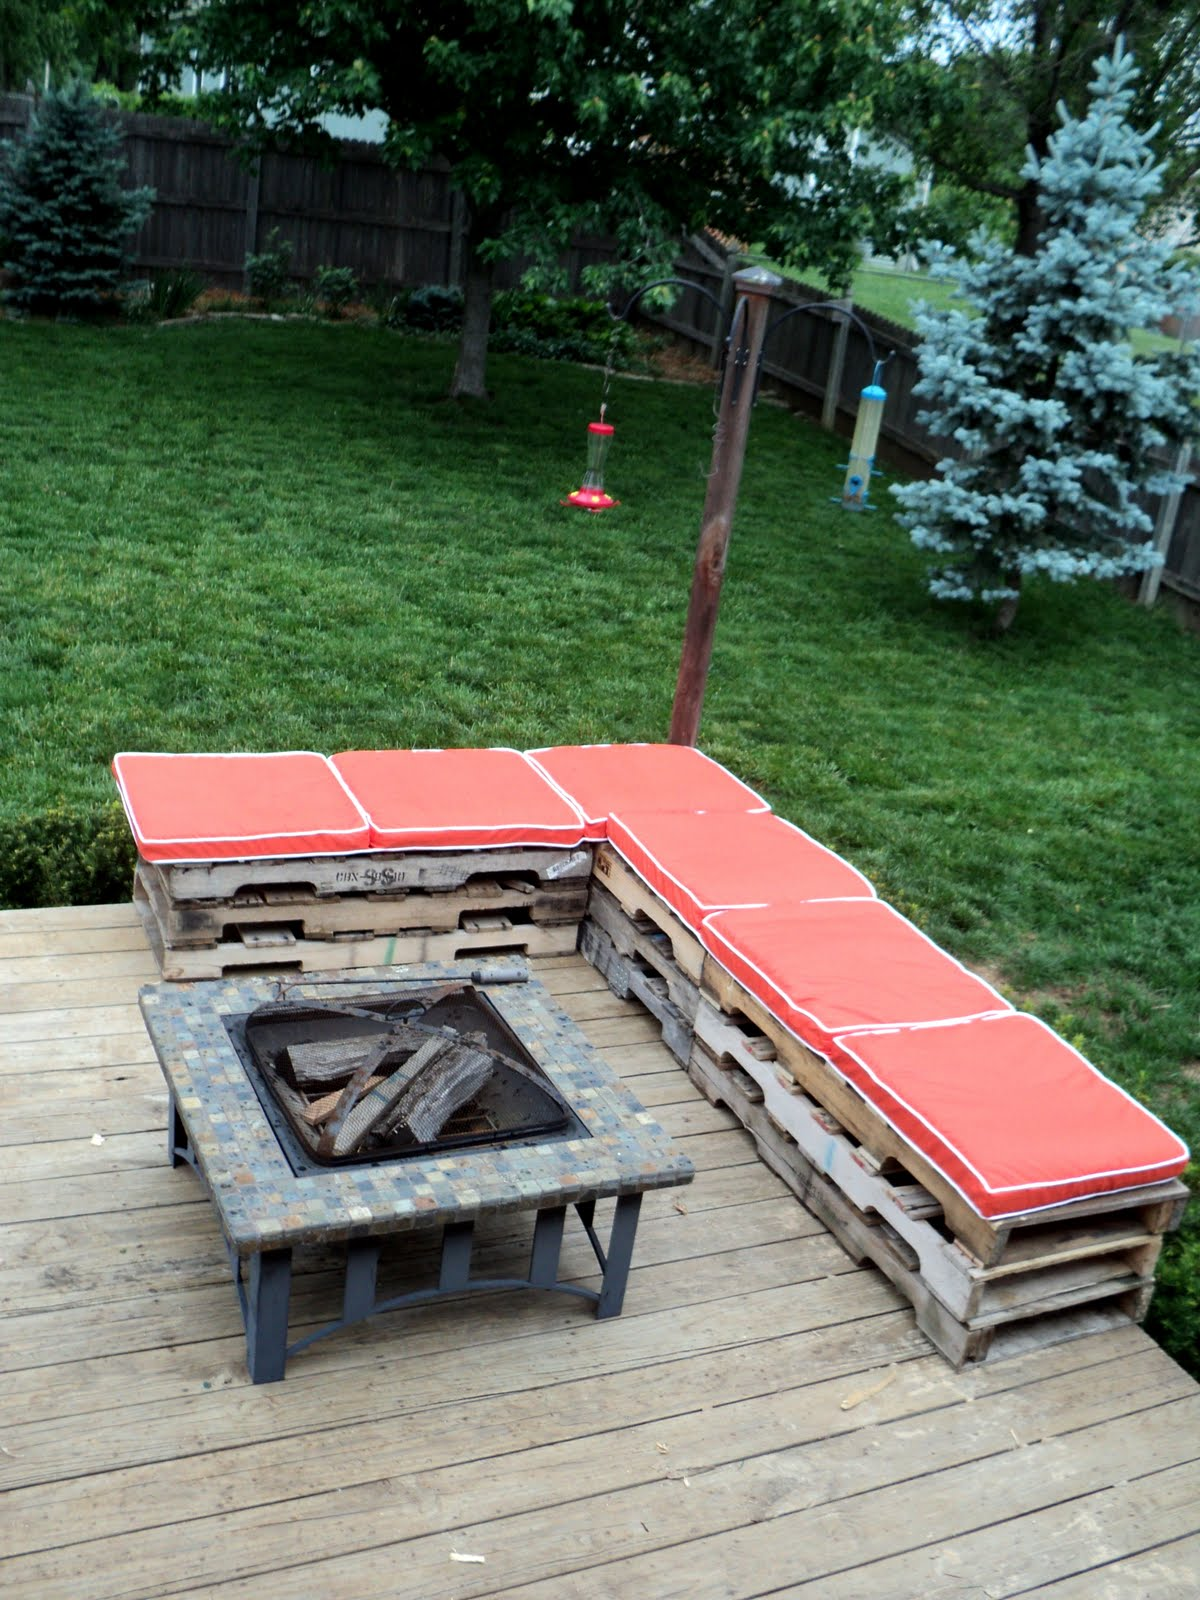 15 Of The Best Backyard DIY Projects | The Craftiest Couple on Diy Back Deck Ideas id=38645